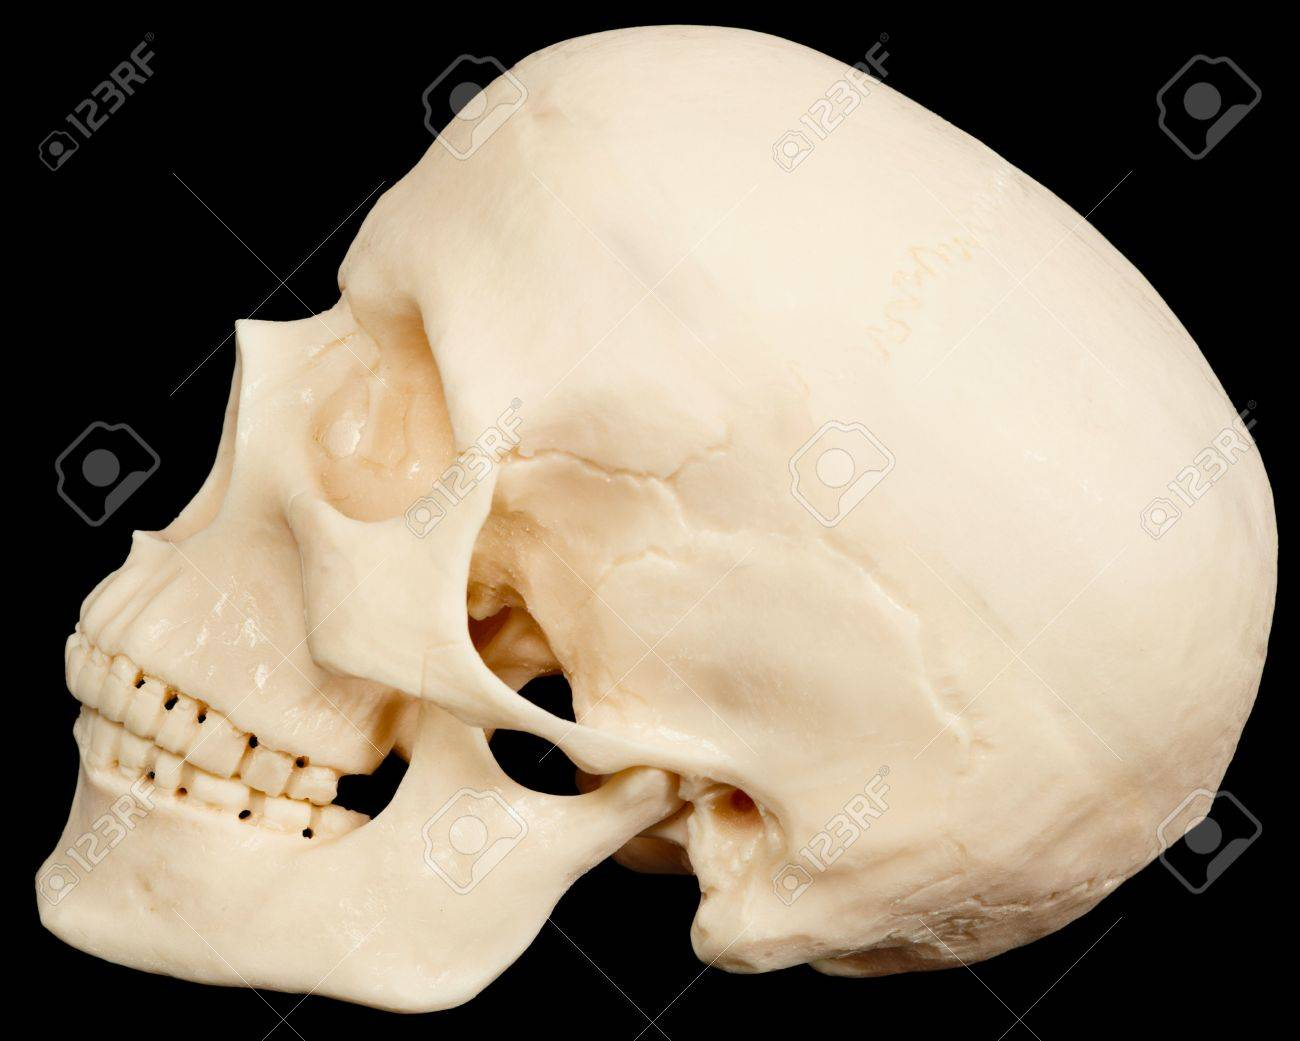 The human skull on a black background in profile Stock Photo - 6916261